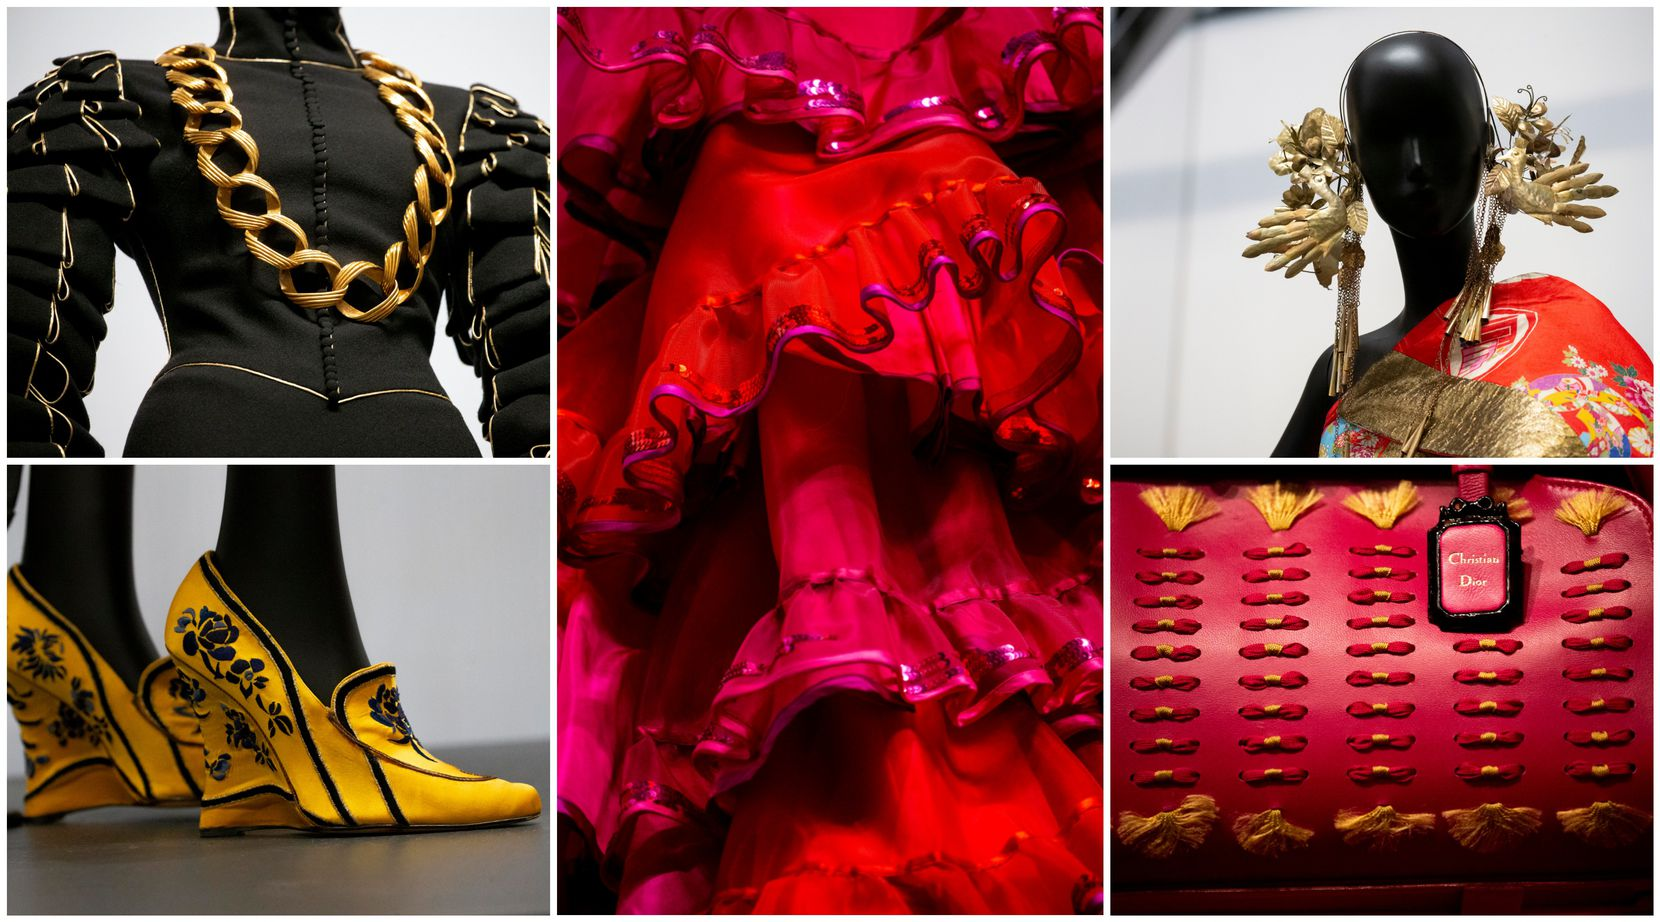 Some of the works in the show designed by John Galliano for Christian Dior.